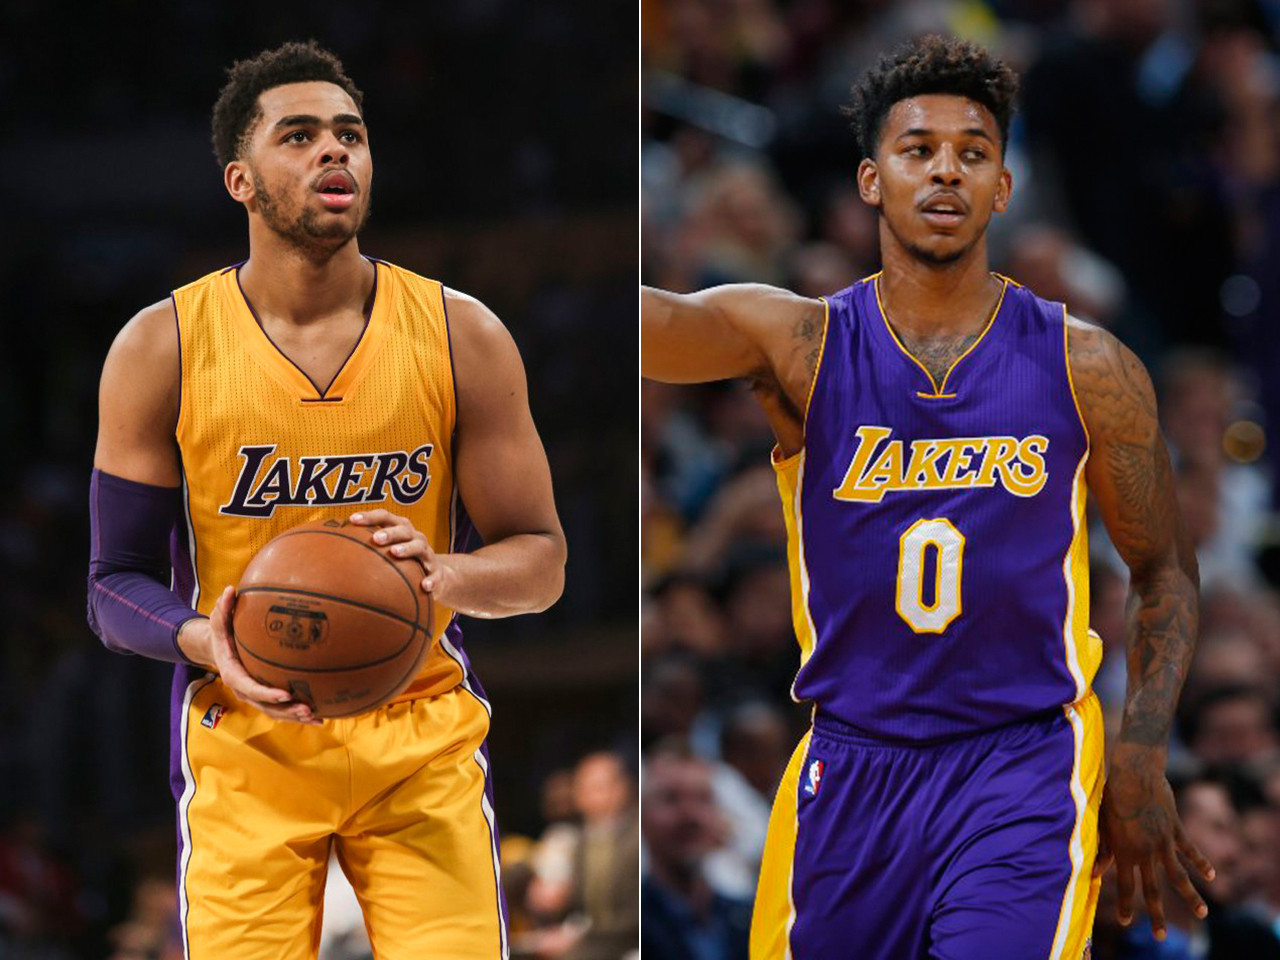 lakers rookie records nick youngs iggy azalea cheating confession